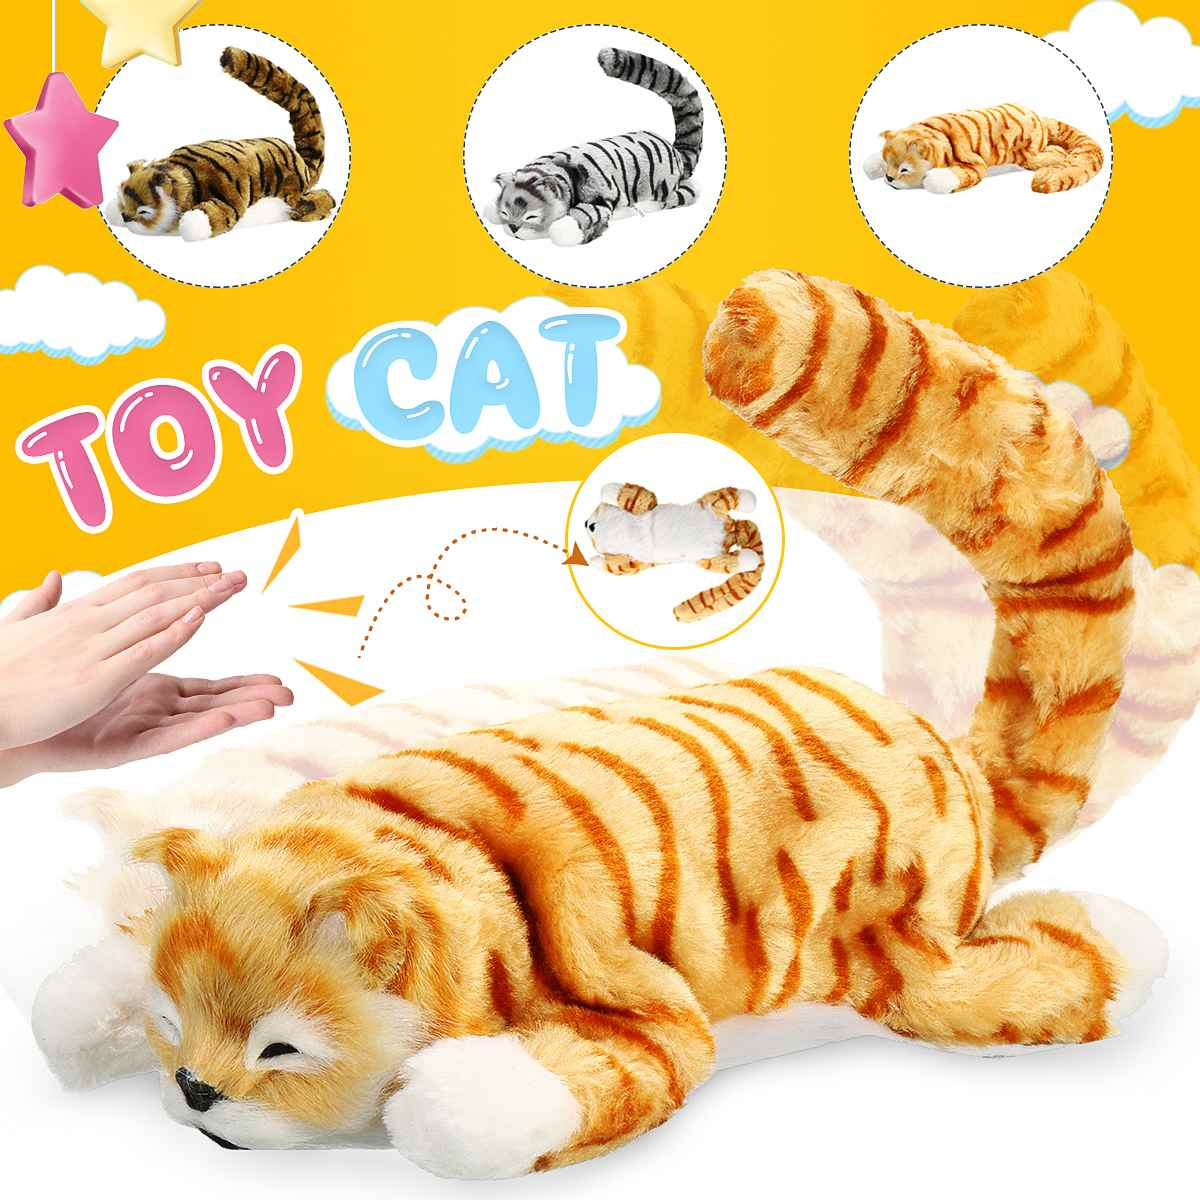 Electronic Robot Cat Sound Control Toys Kid Plush Electronic Toy Interactive Clap and Tail Swing for